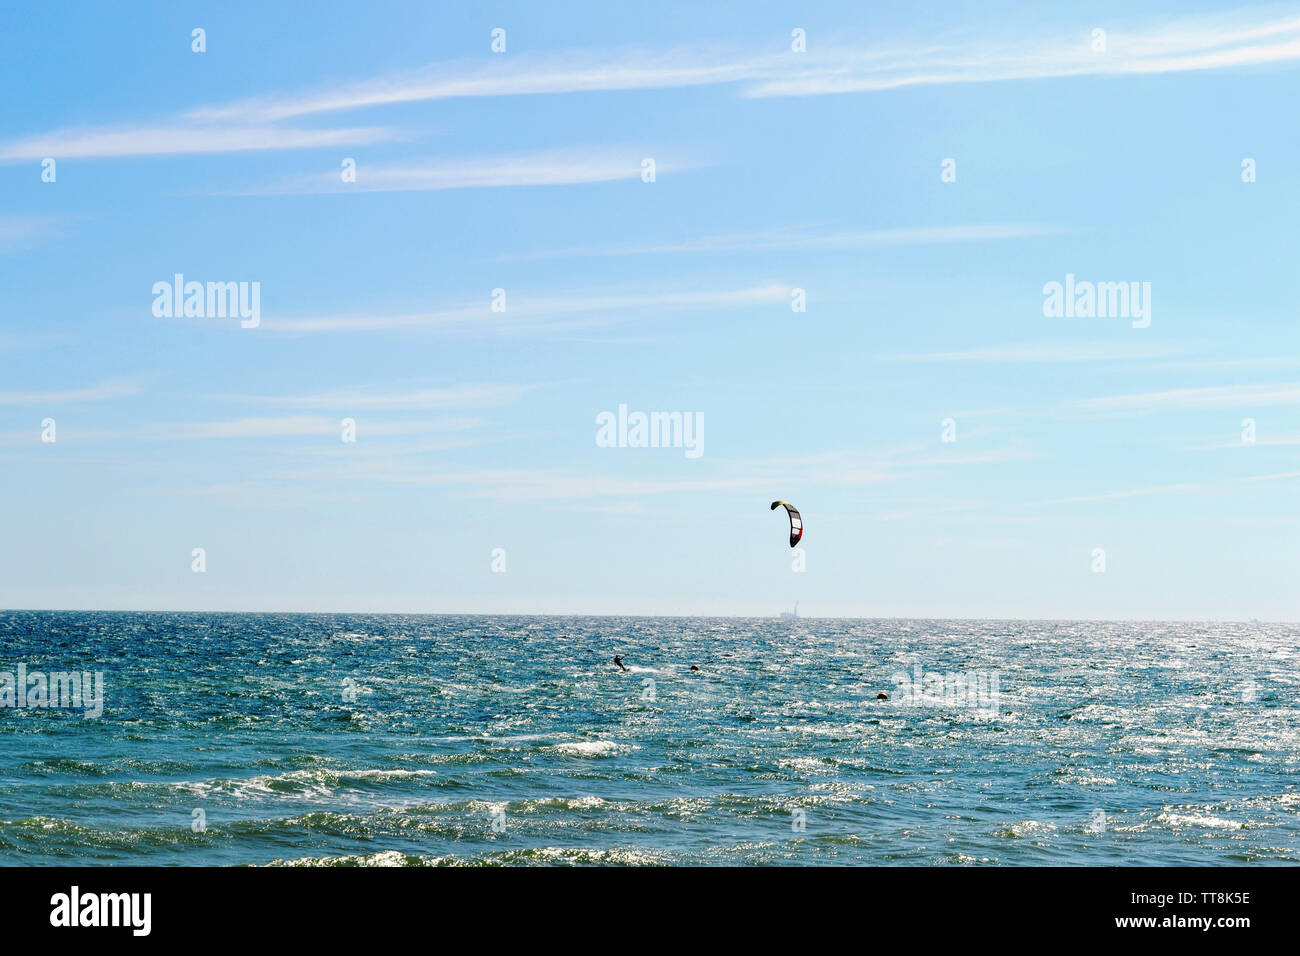 Beautiful seascape view in backlit and kitesurfing in Brighton, England. Stock Photo